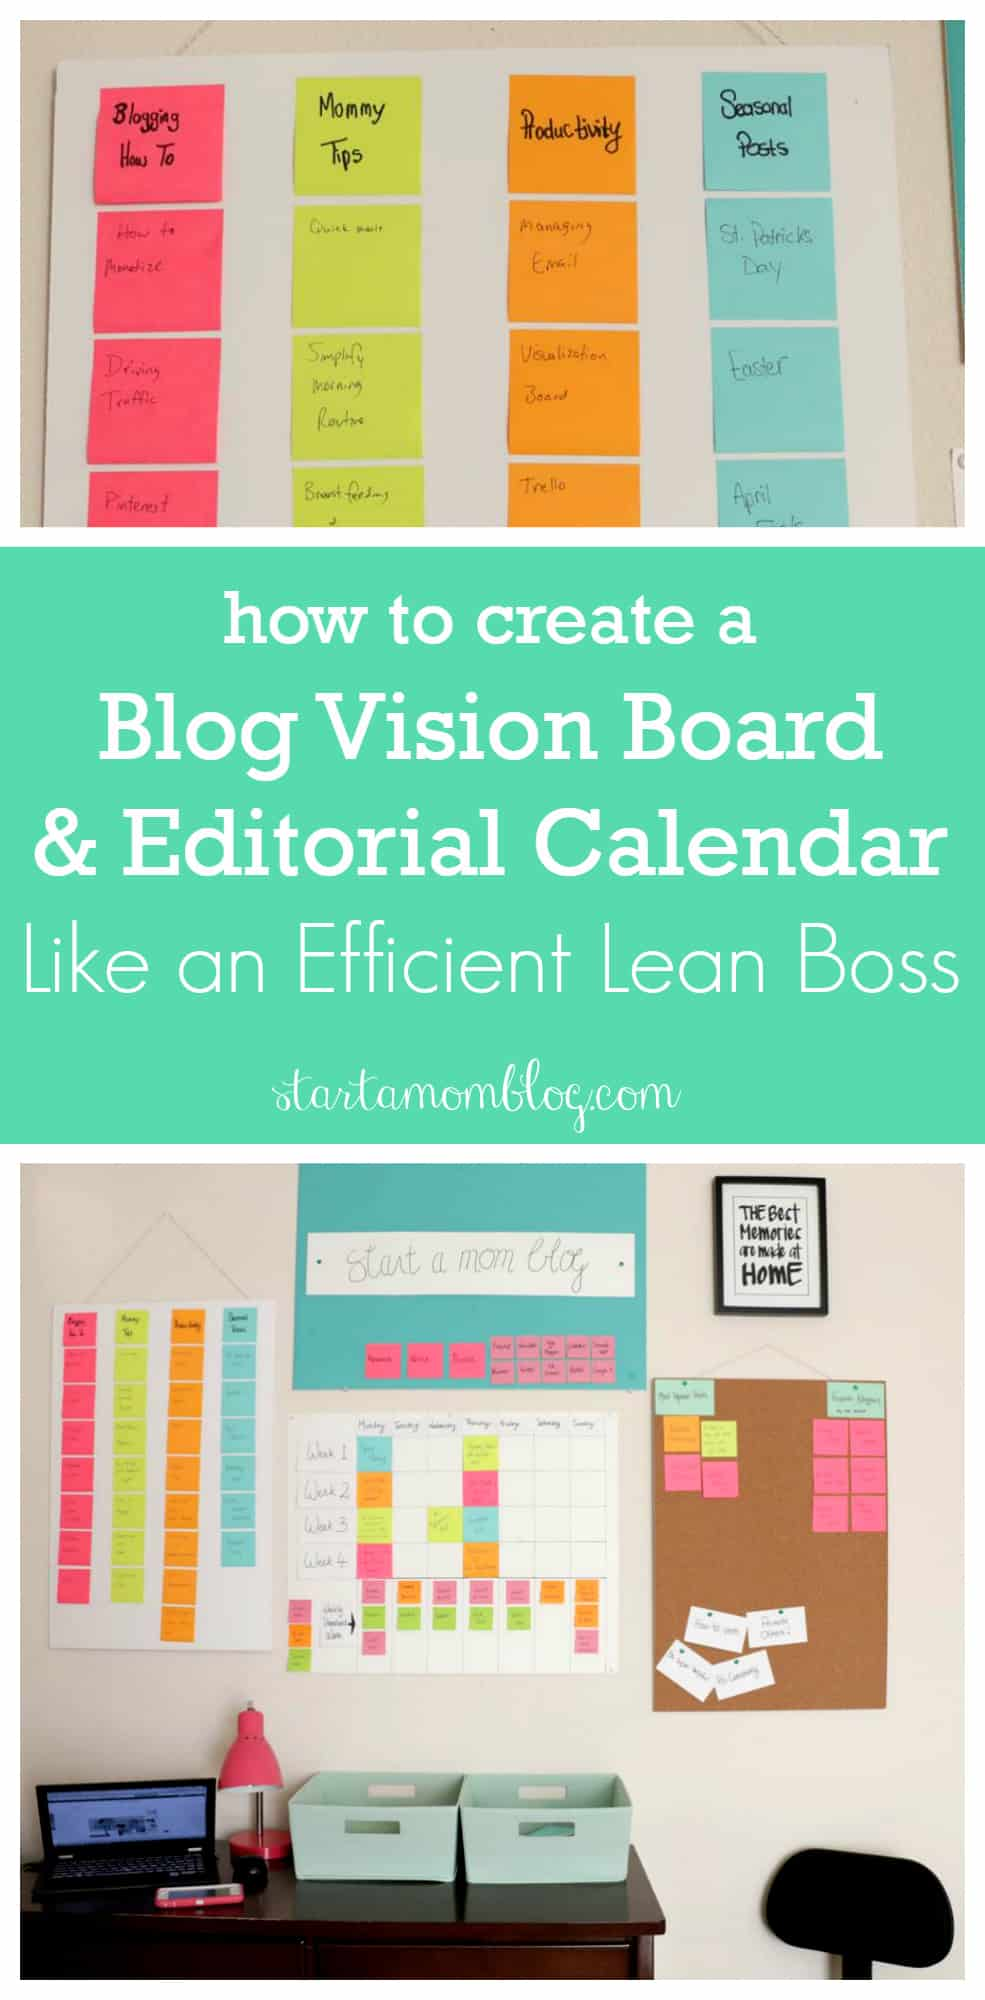 How to create a blog vision board and editorial calendar like an efficient lean boss